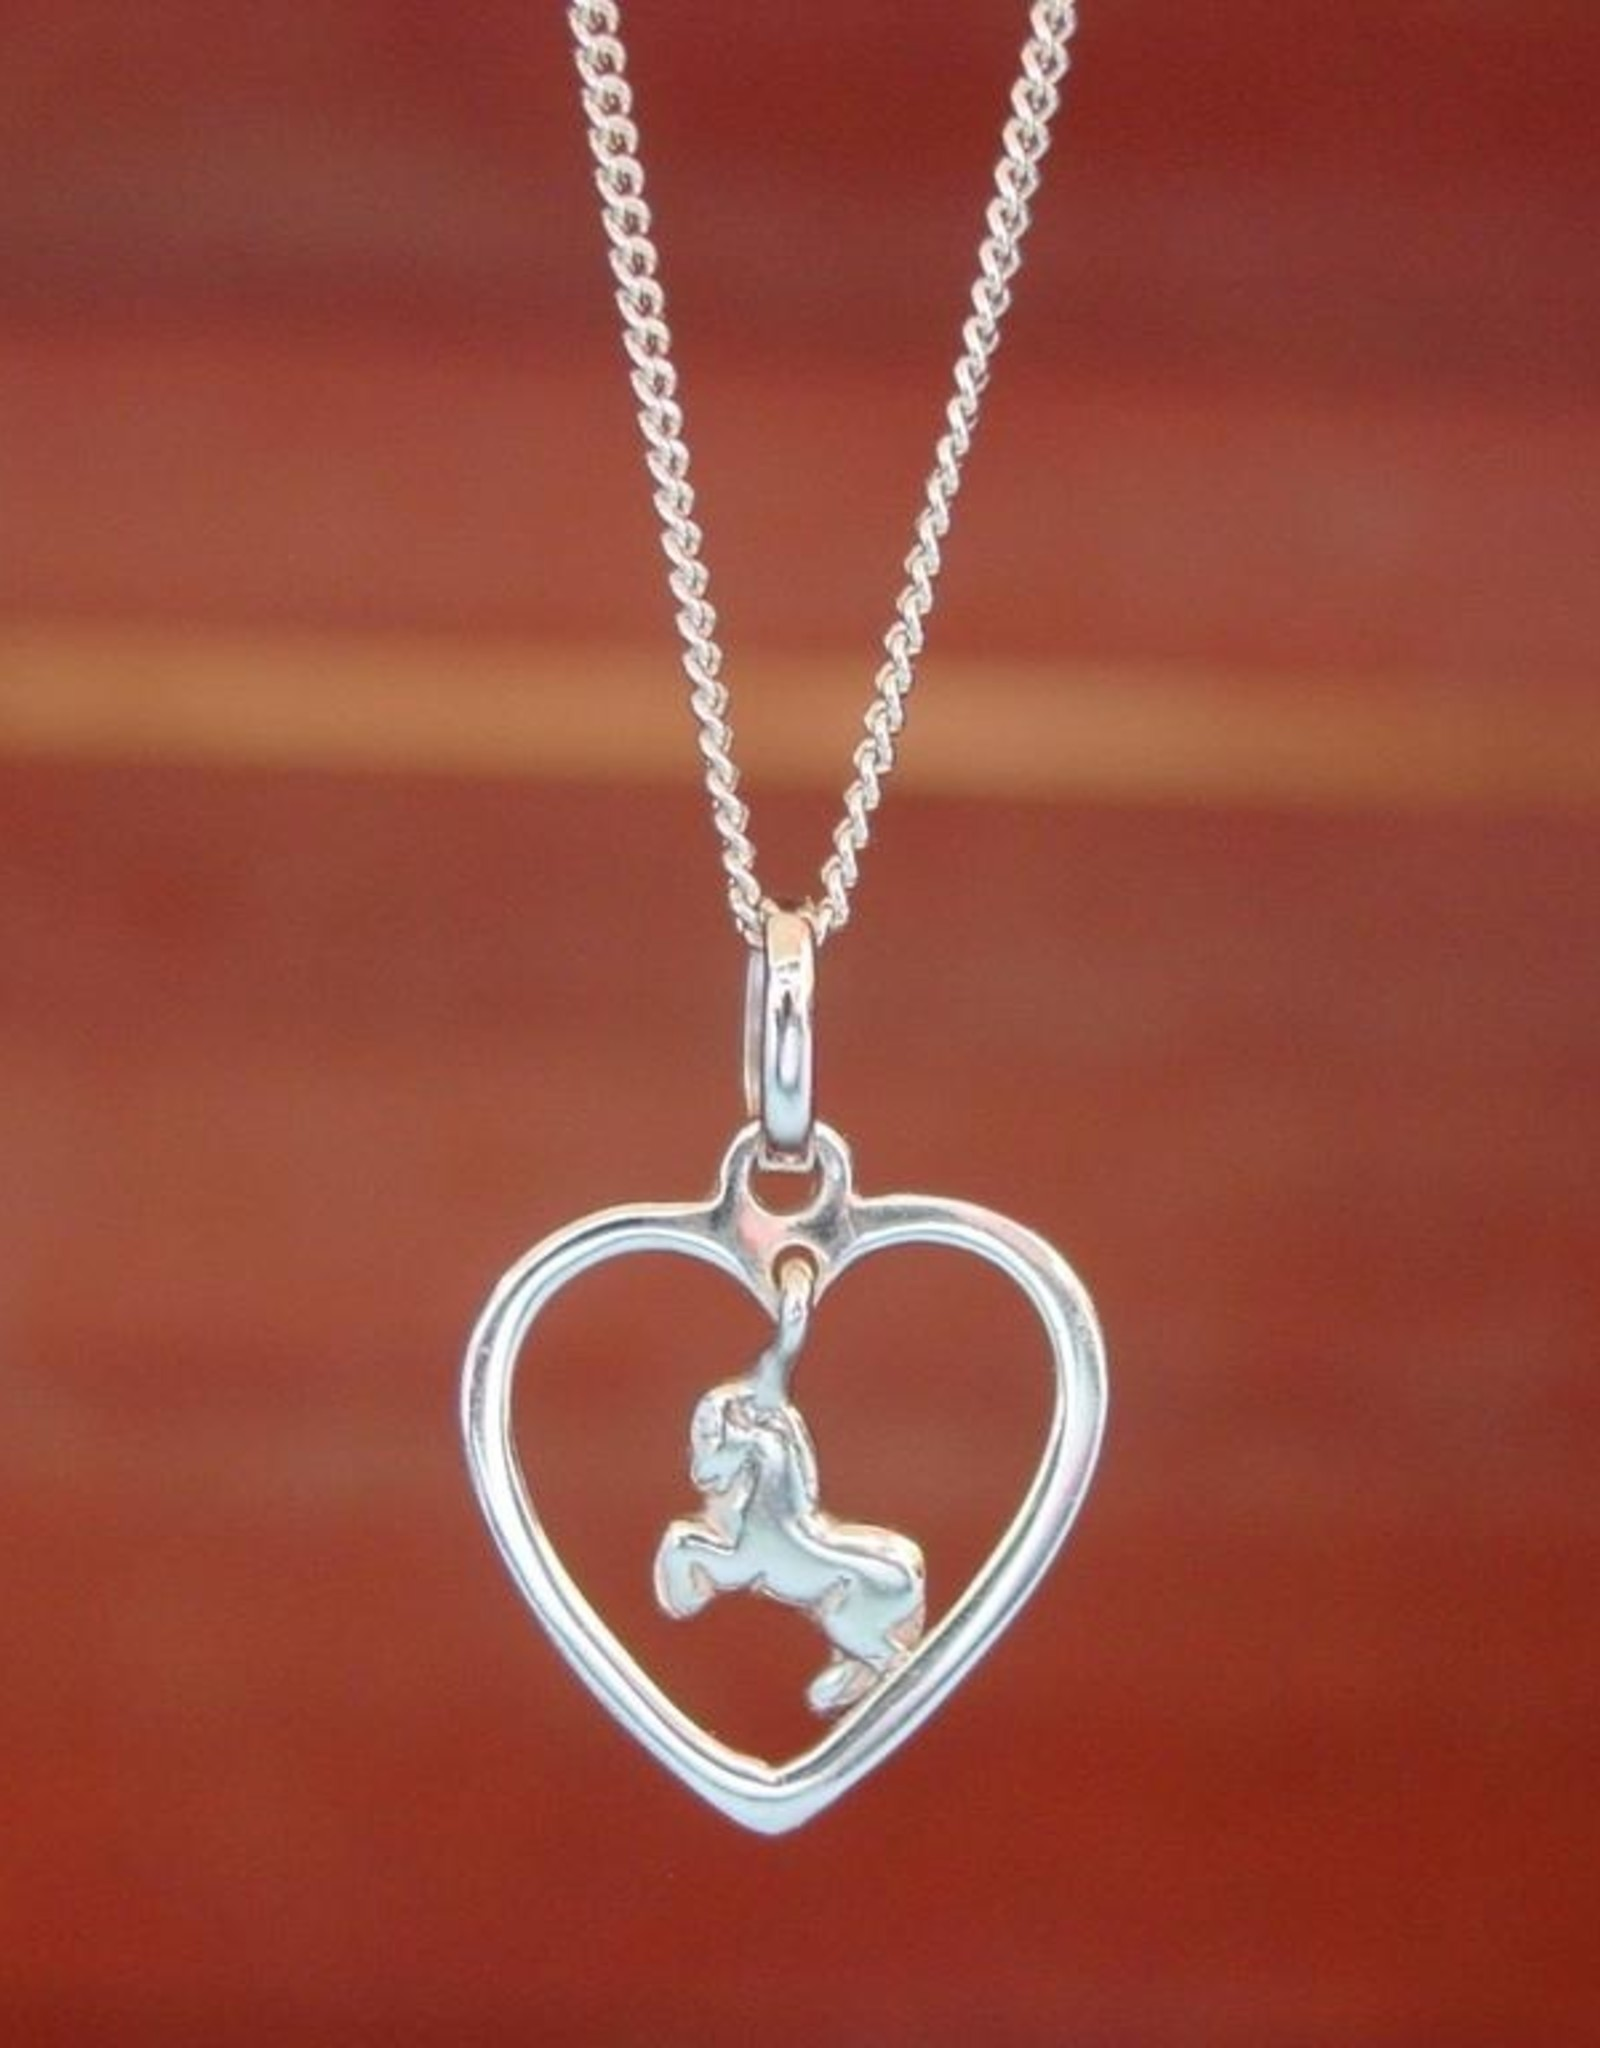 Galloping Horse in Heart Pendant Necklace